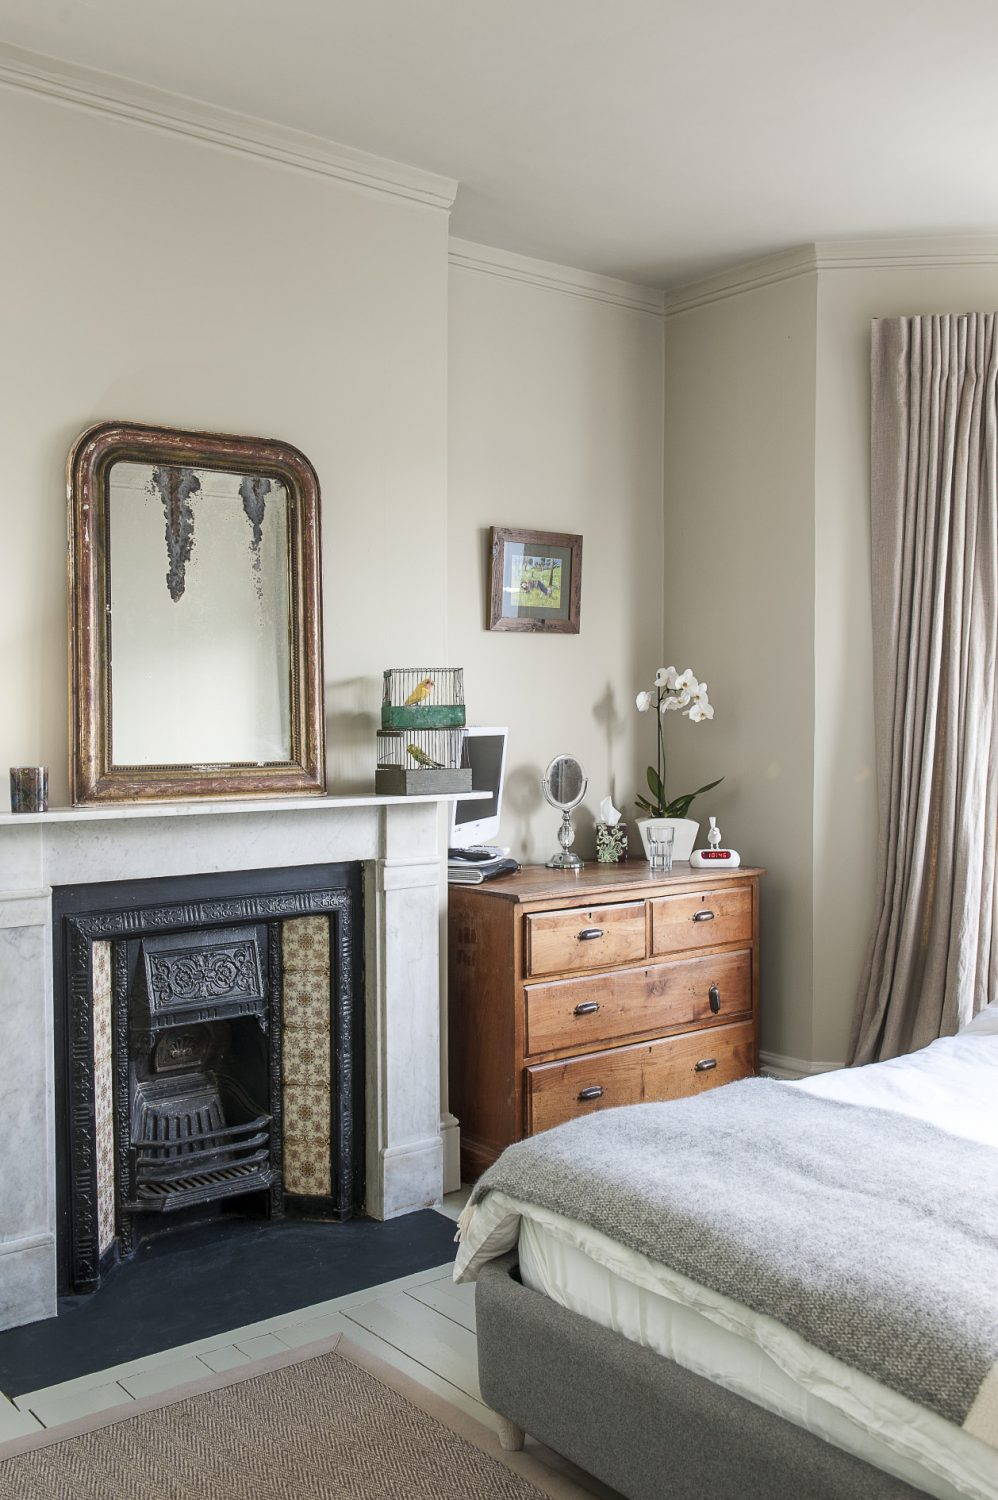 A mirror sits above the fireplace in the master bedroom